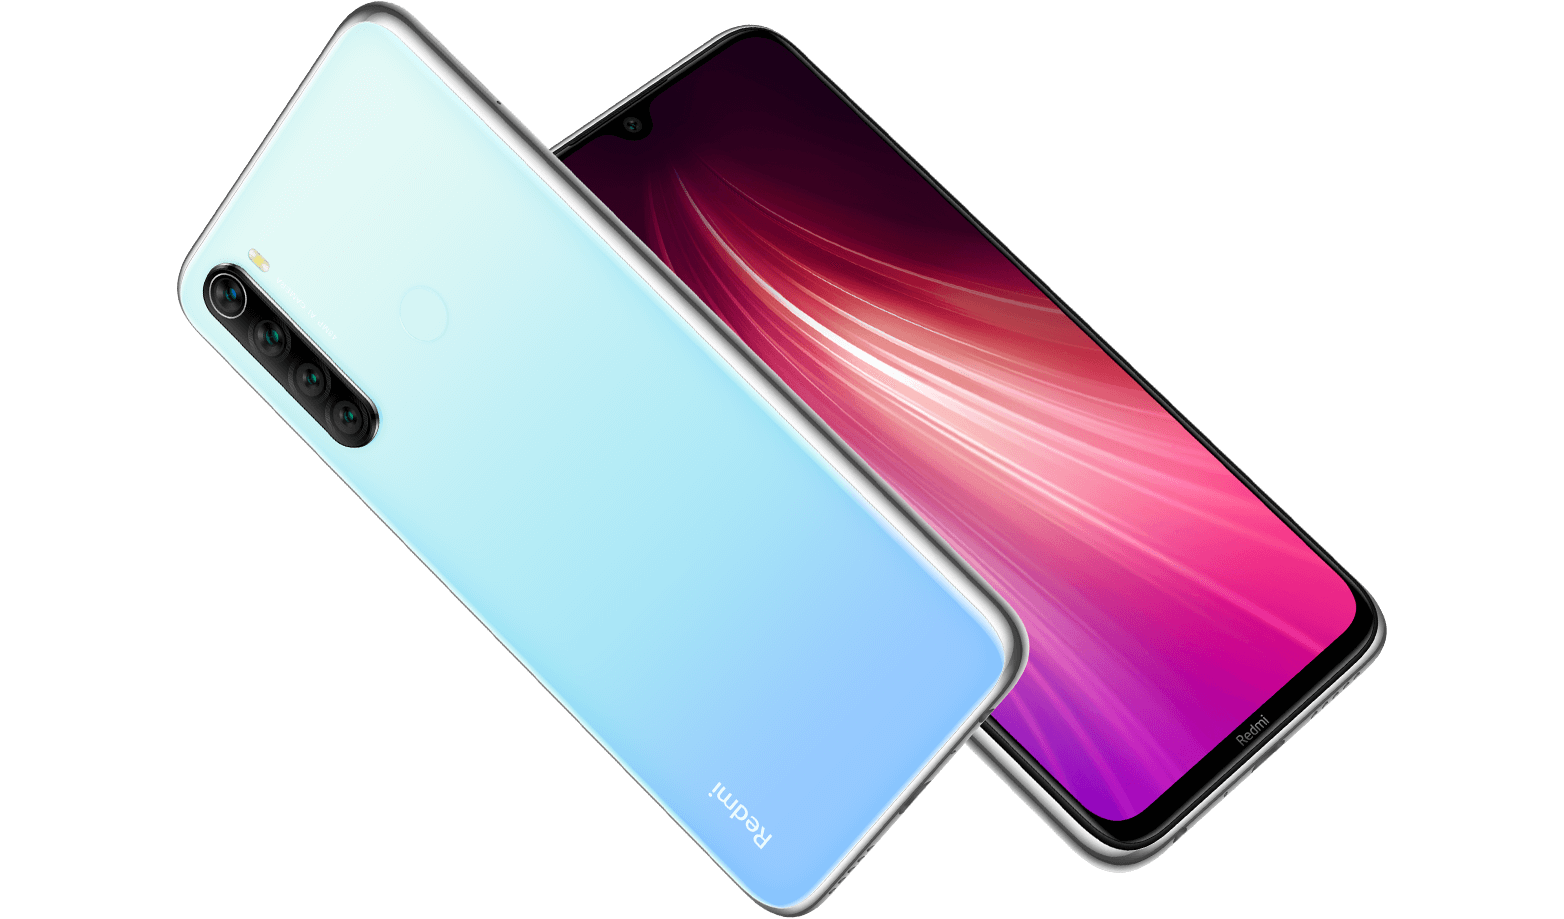 Xiaomi Redmi NOTE 8 Full Specifications and Price in Kenya